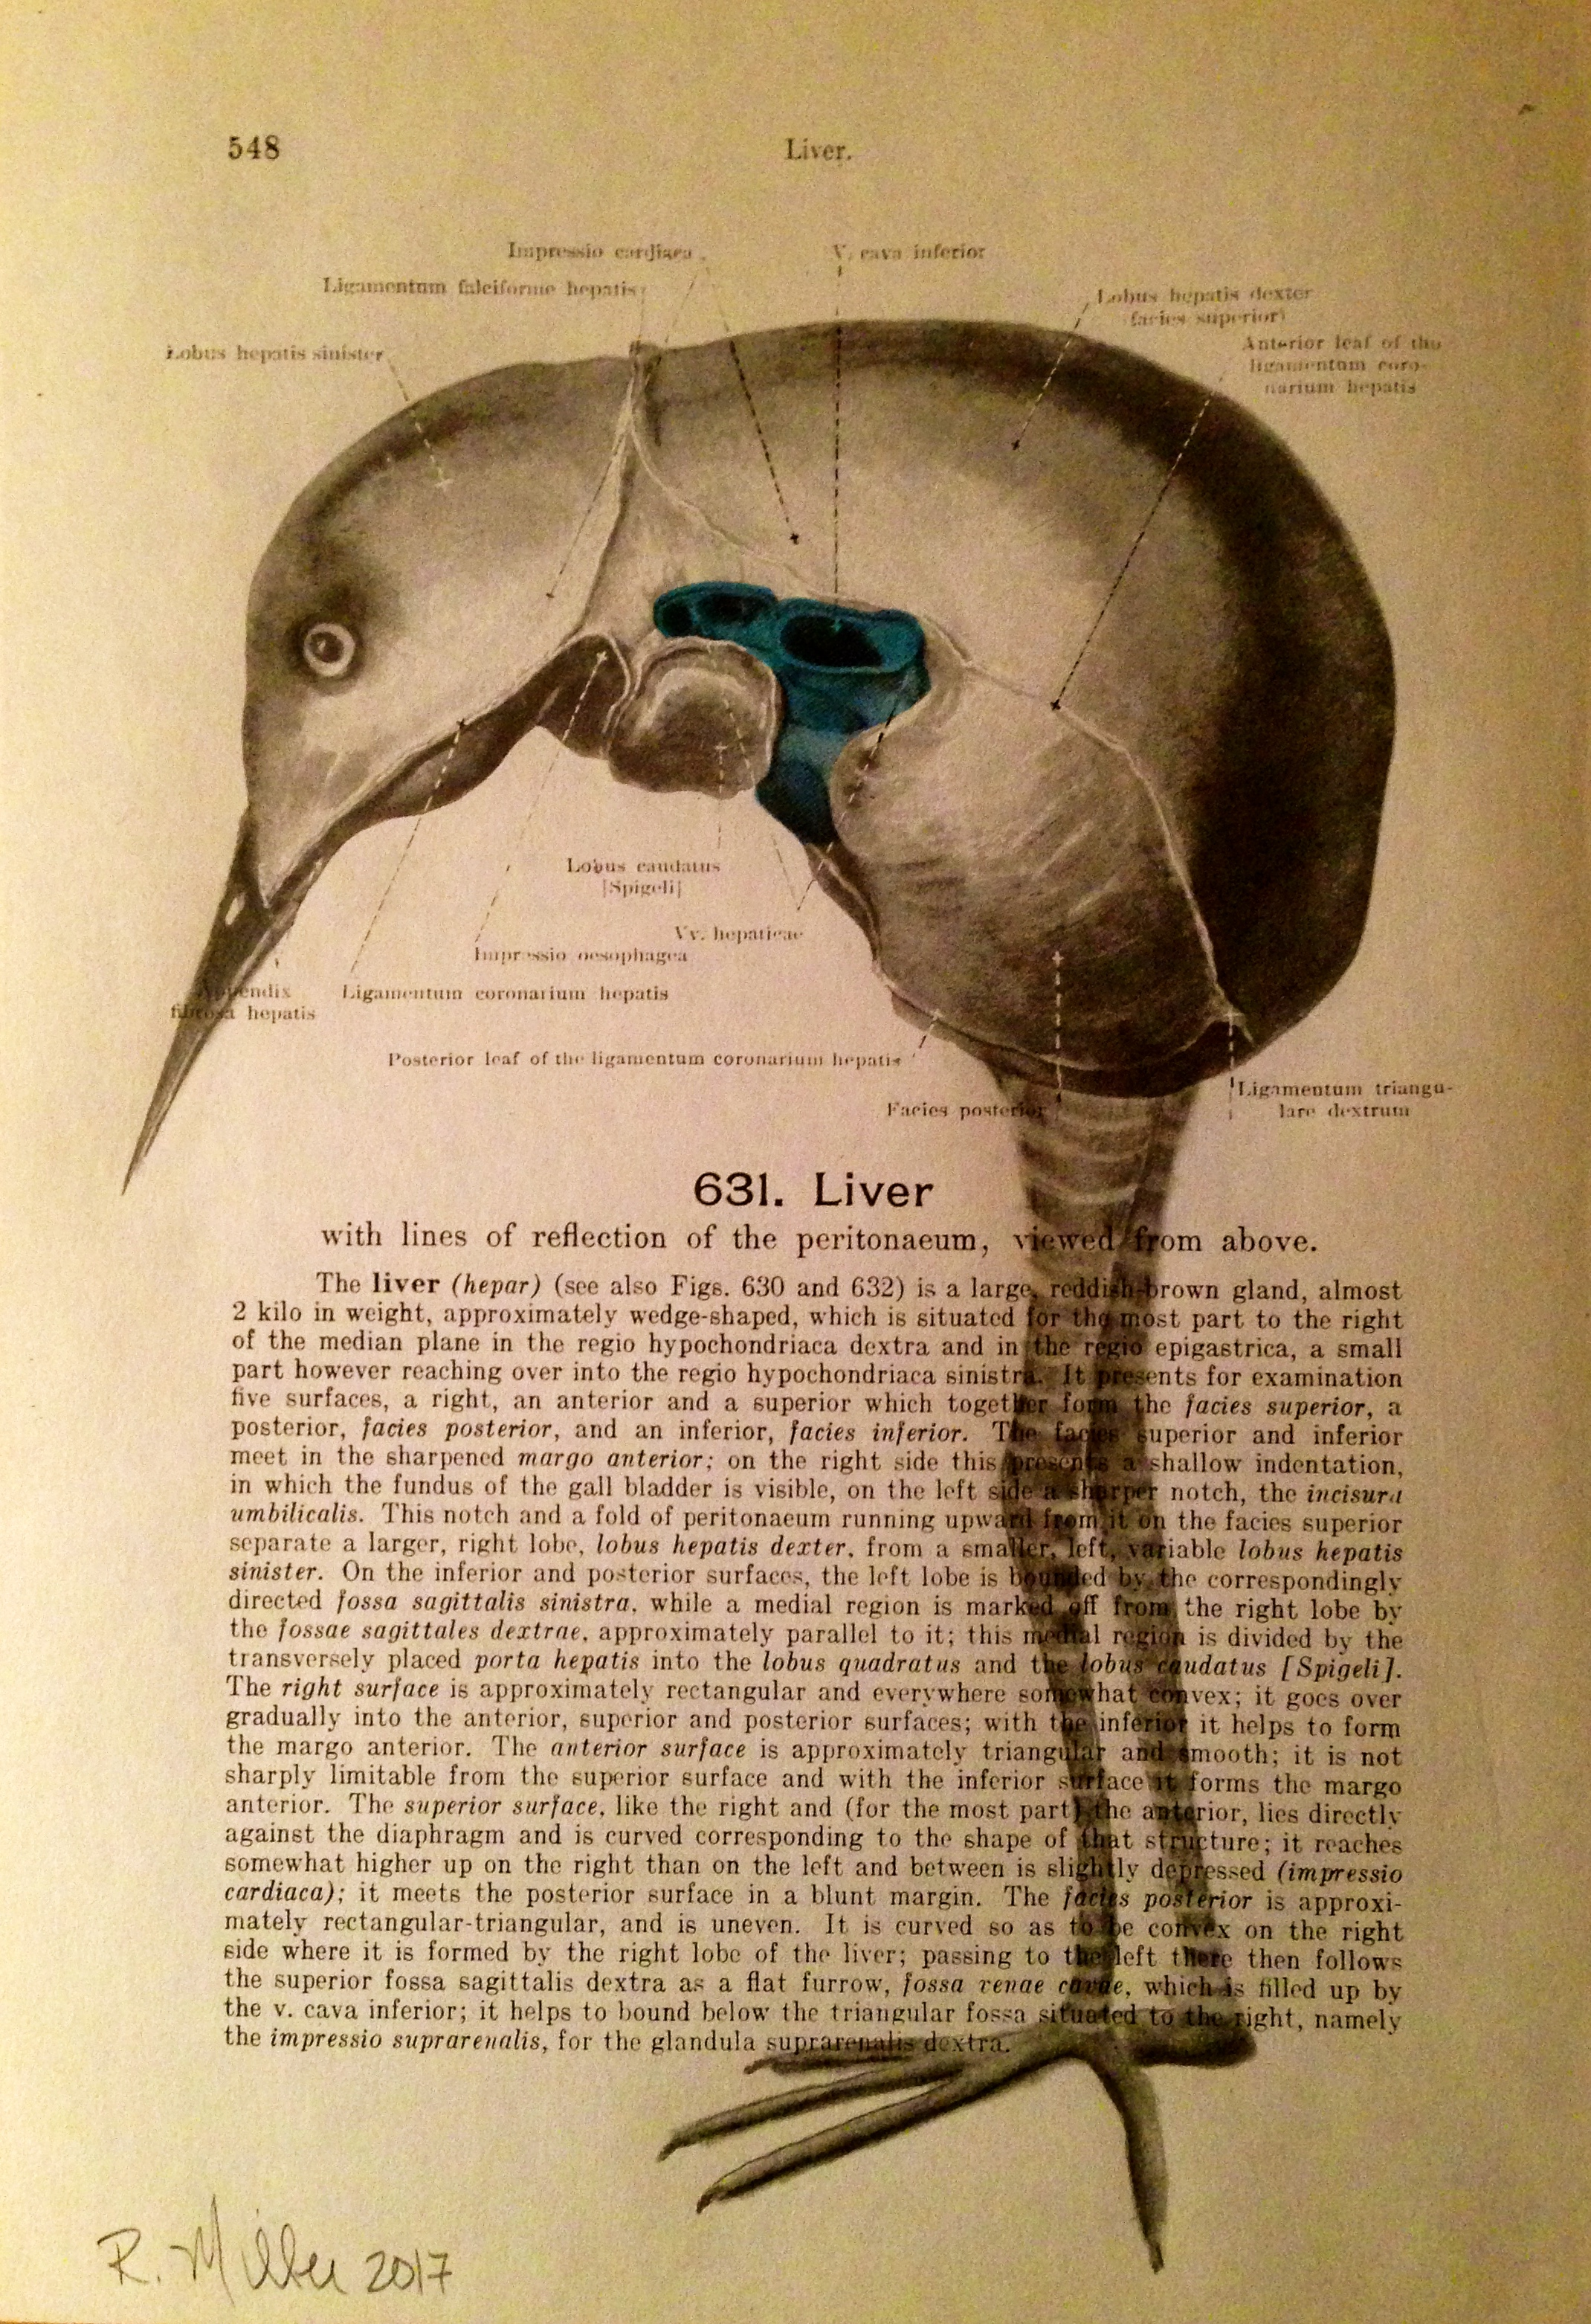 1861 Anatomy paper for Liver, I see a bird    Liverbird, 2017   Charcoal on antique 1861 medical paper